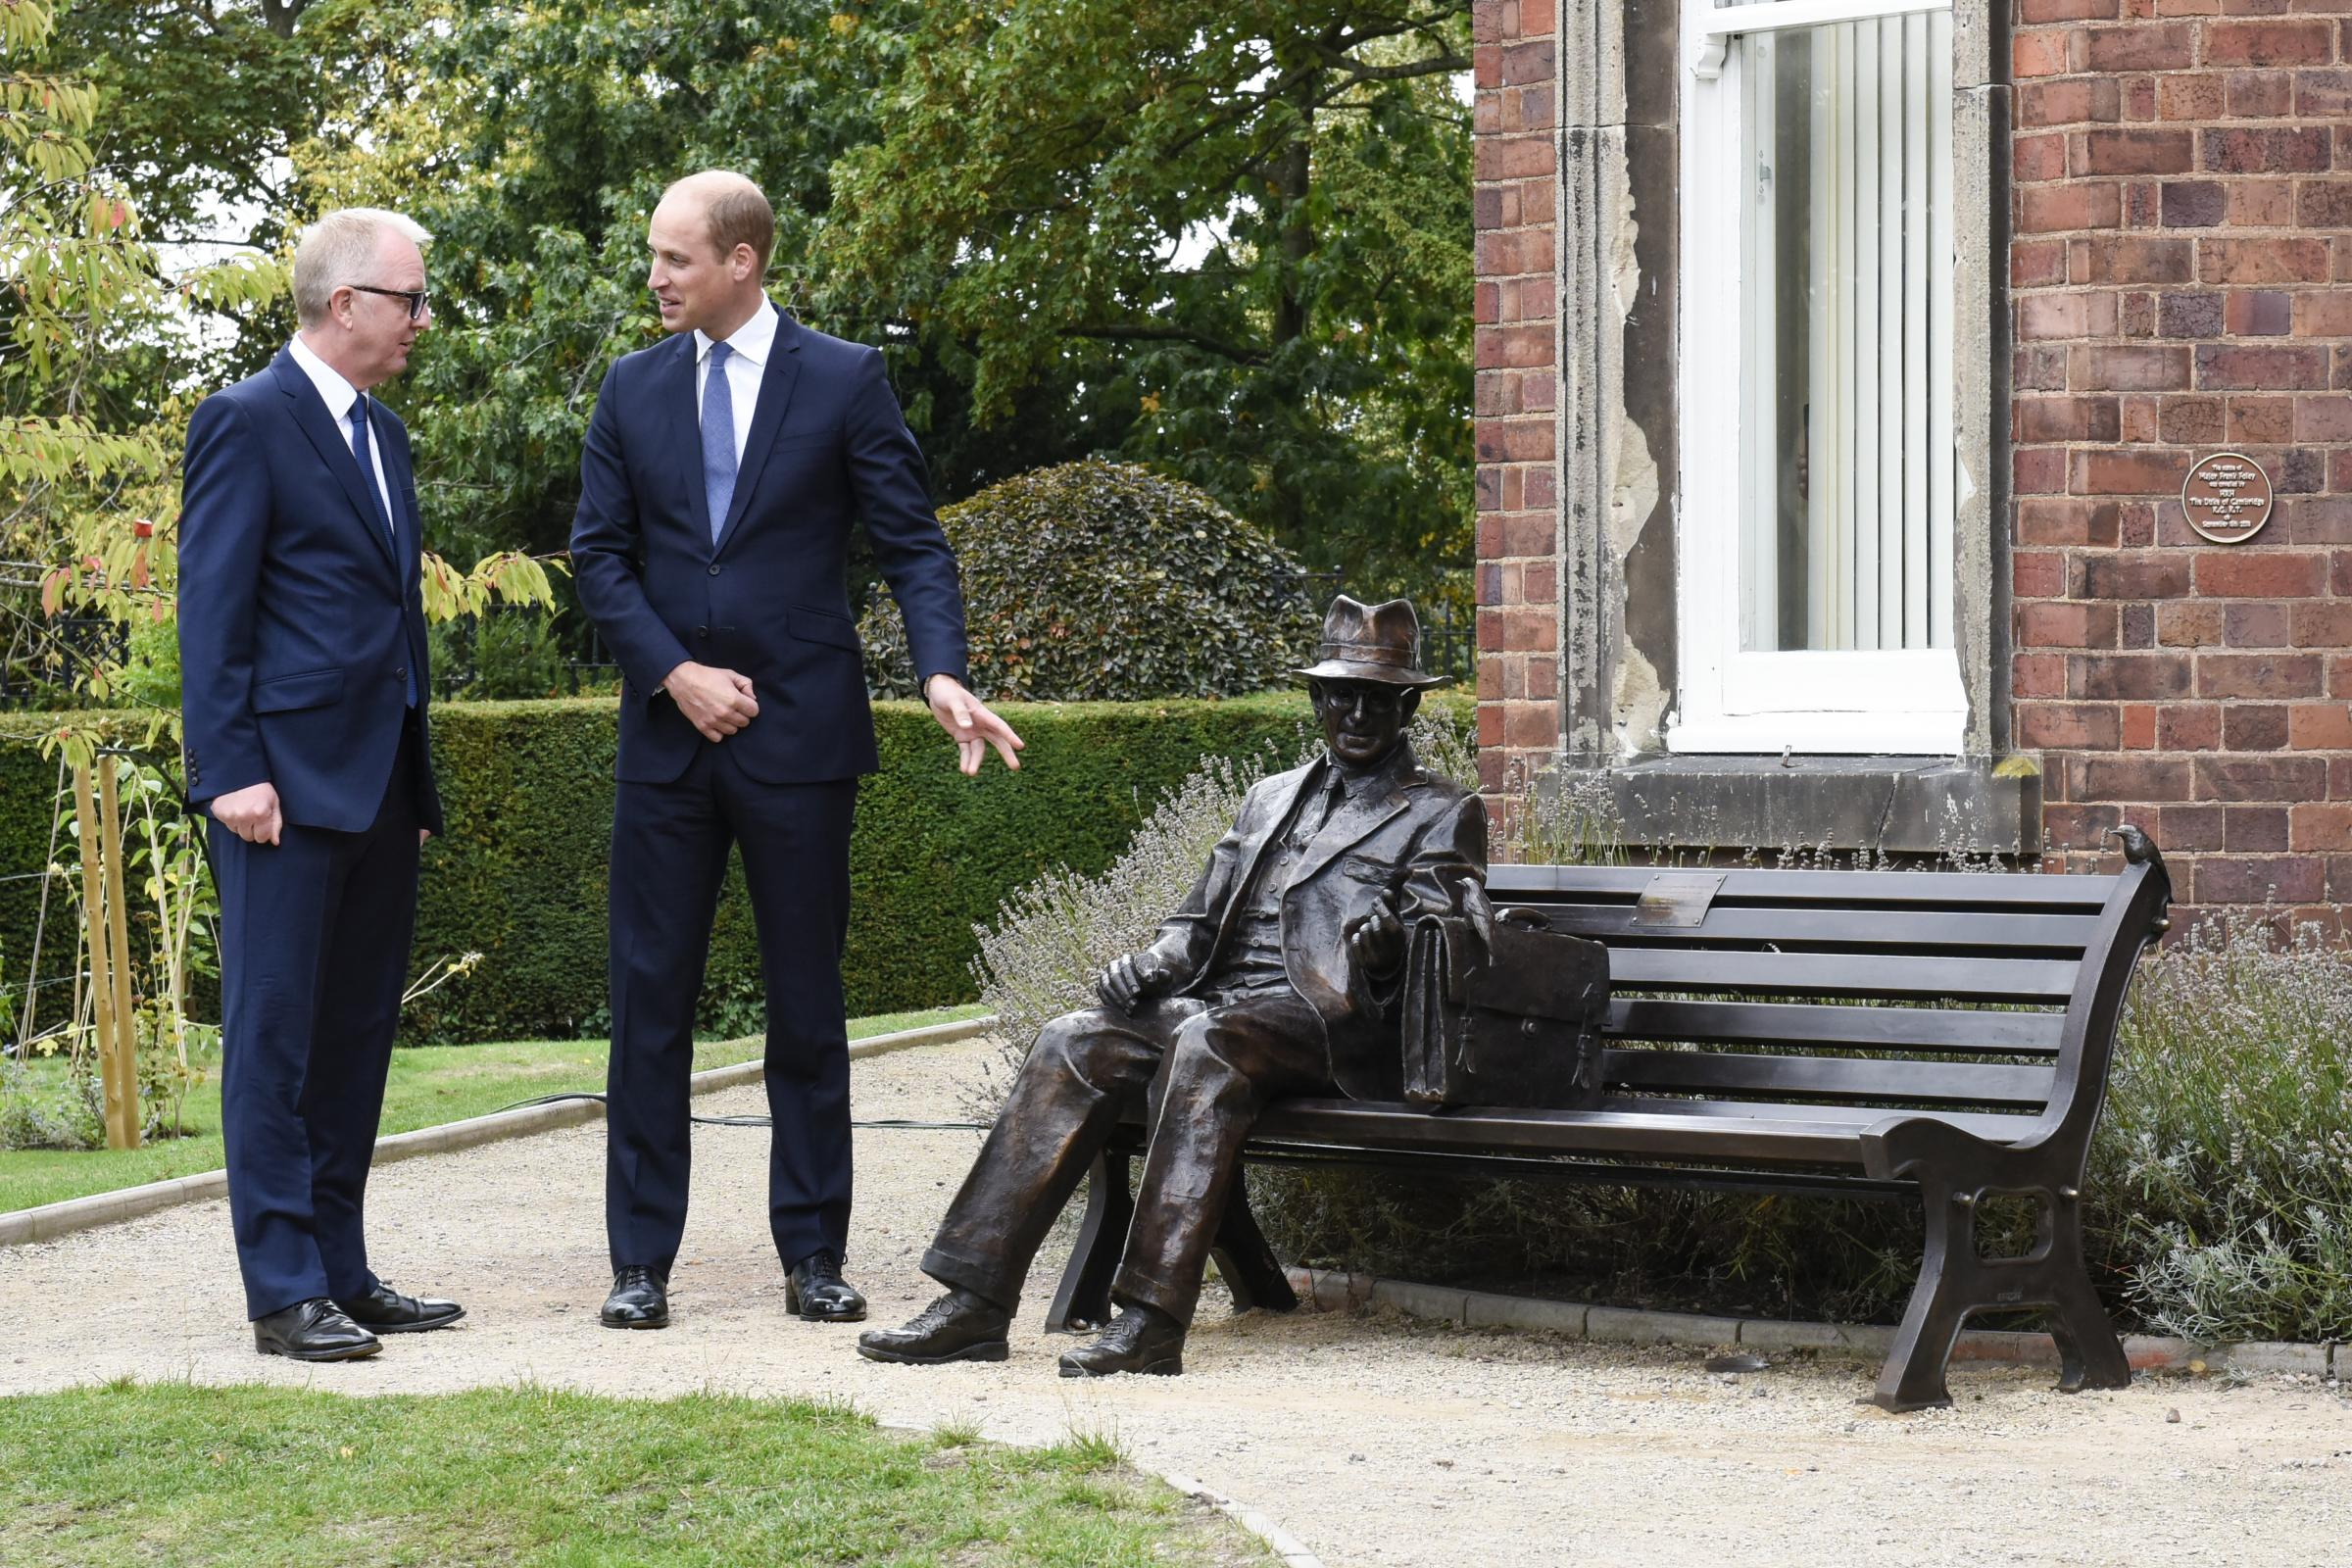 The Duke of Cambridge at the unveiling of a sculpture of Frank Foley at Mary Stevens Park, Stourbridge. PRESS ASSOCIATION Photo. Picture date: Tuesday September 18, 2018. See PA story ROYAL Cambridge. Photo credit should read: Aaron Chown/PA Wire.